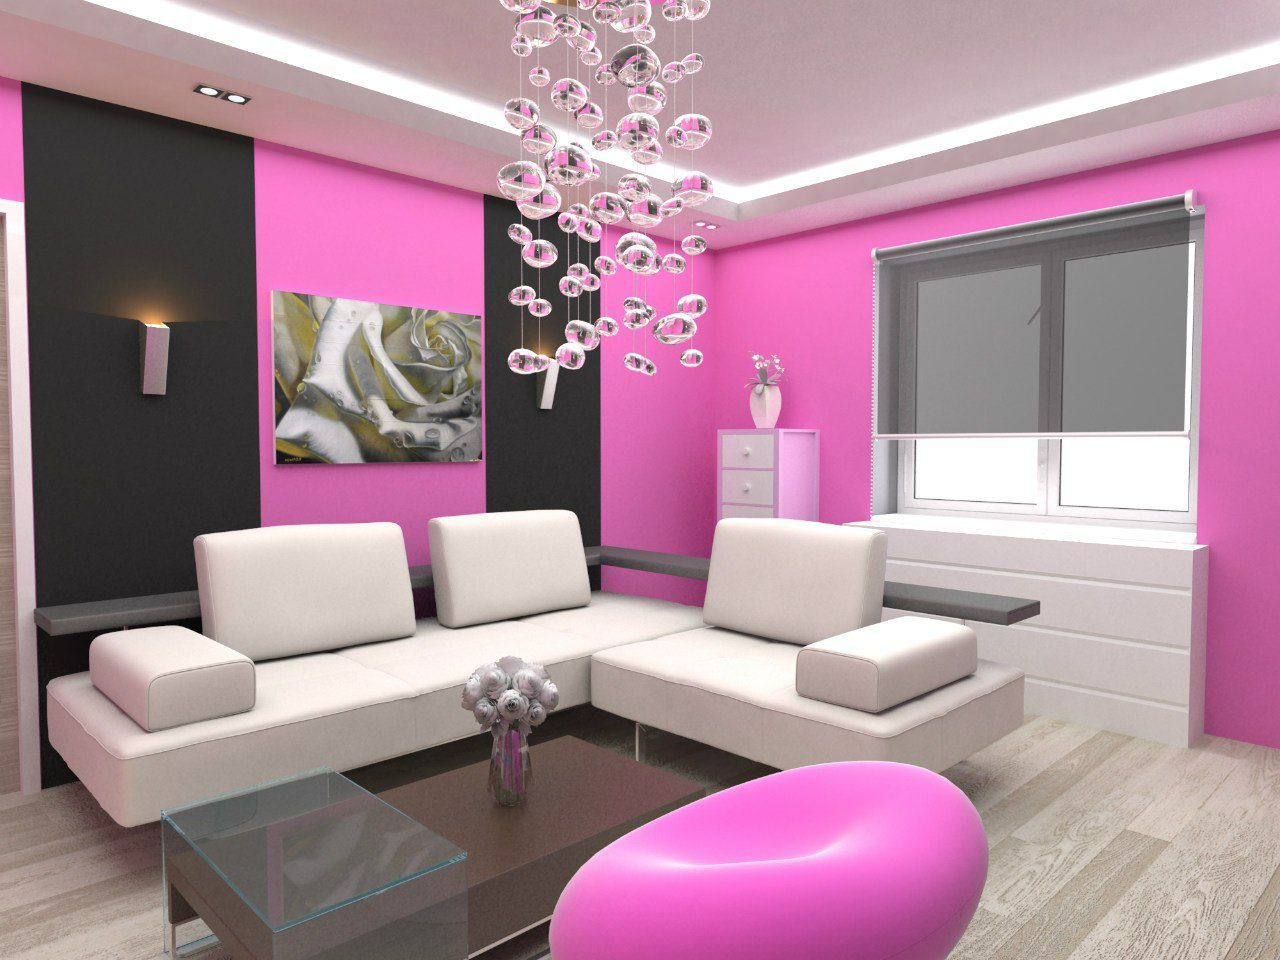 Pink bedroom painting ideas - Pink And Gray Room Ideas Pink Wall Paint For Living Room